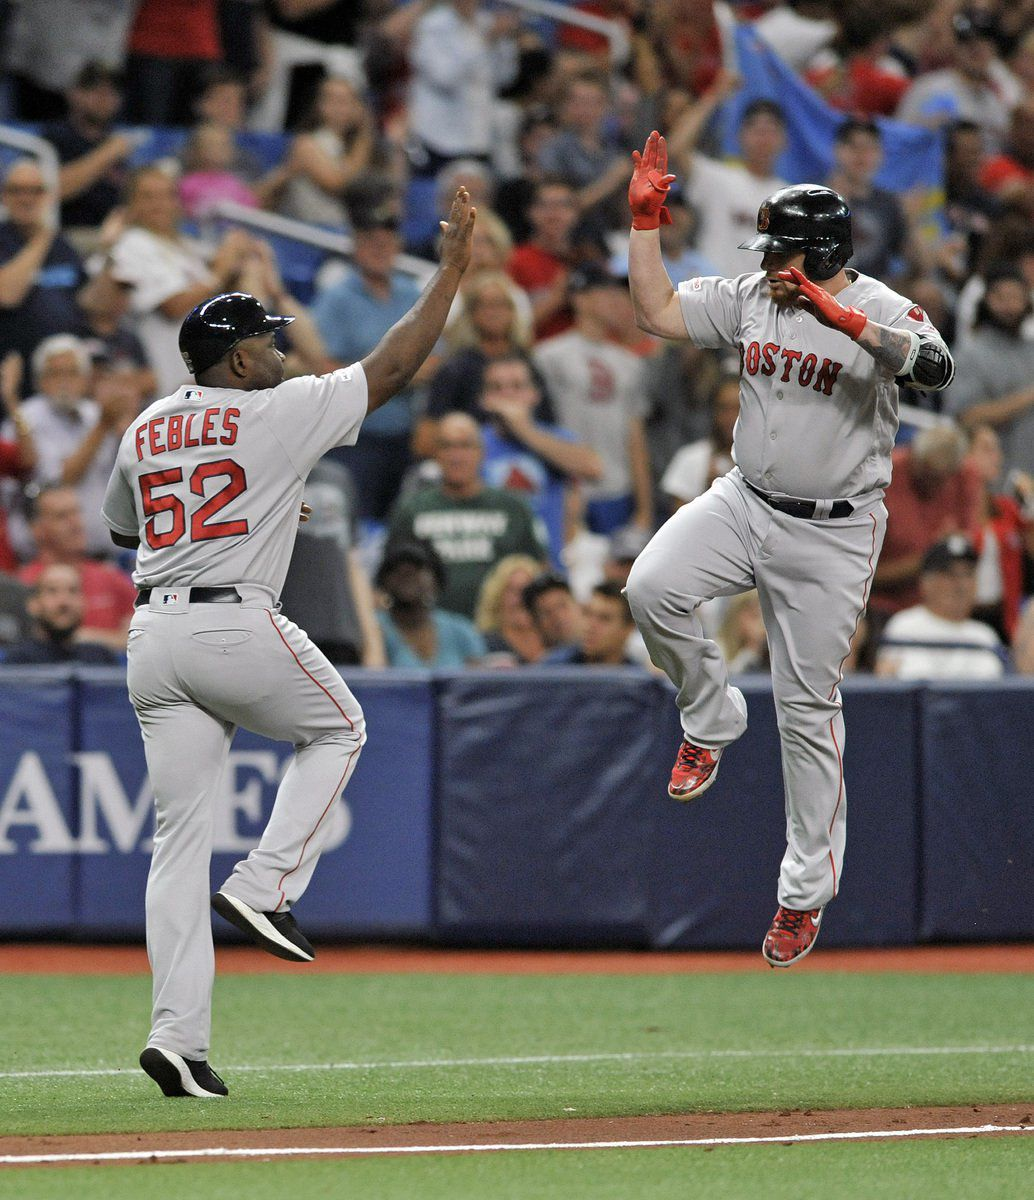 Boston moves into 2nd place in AL East